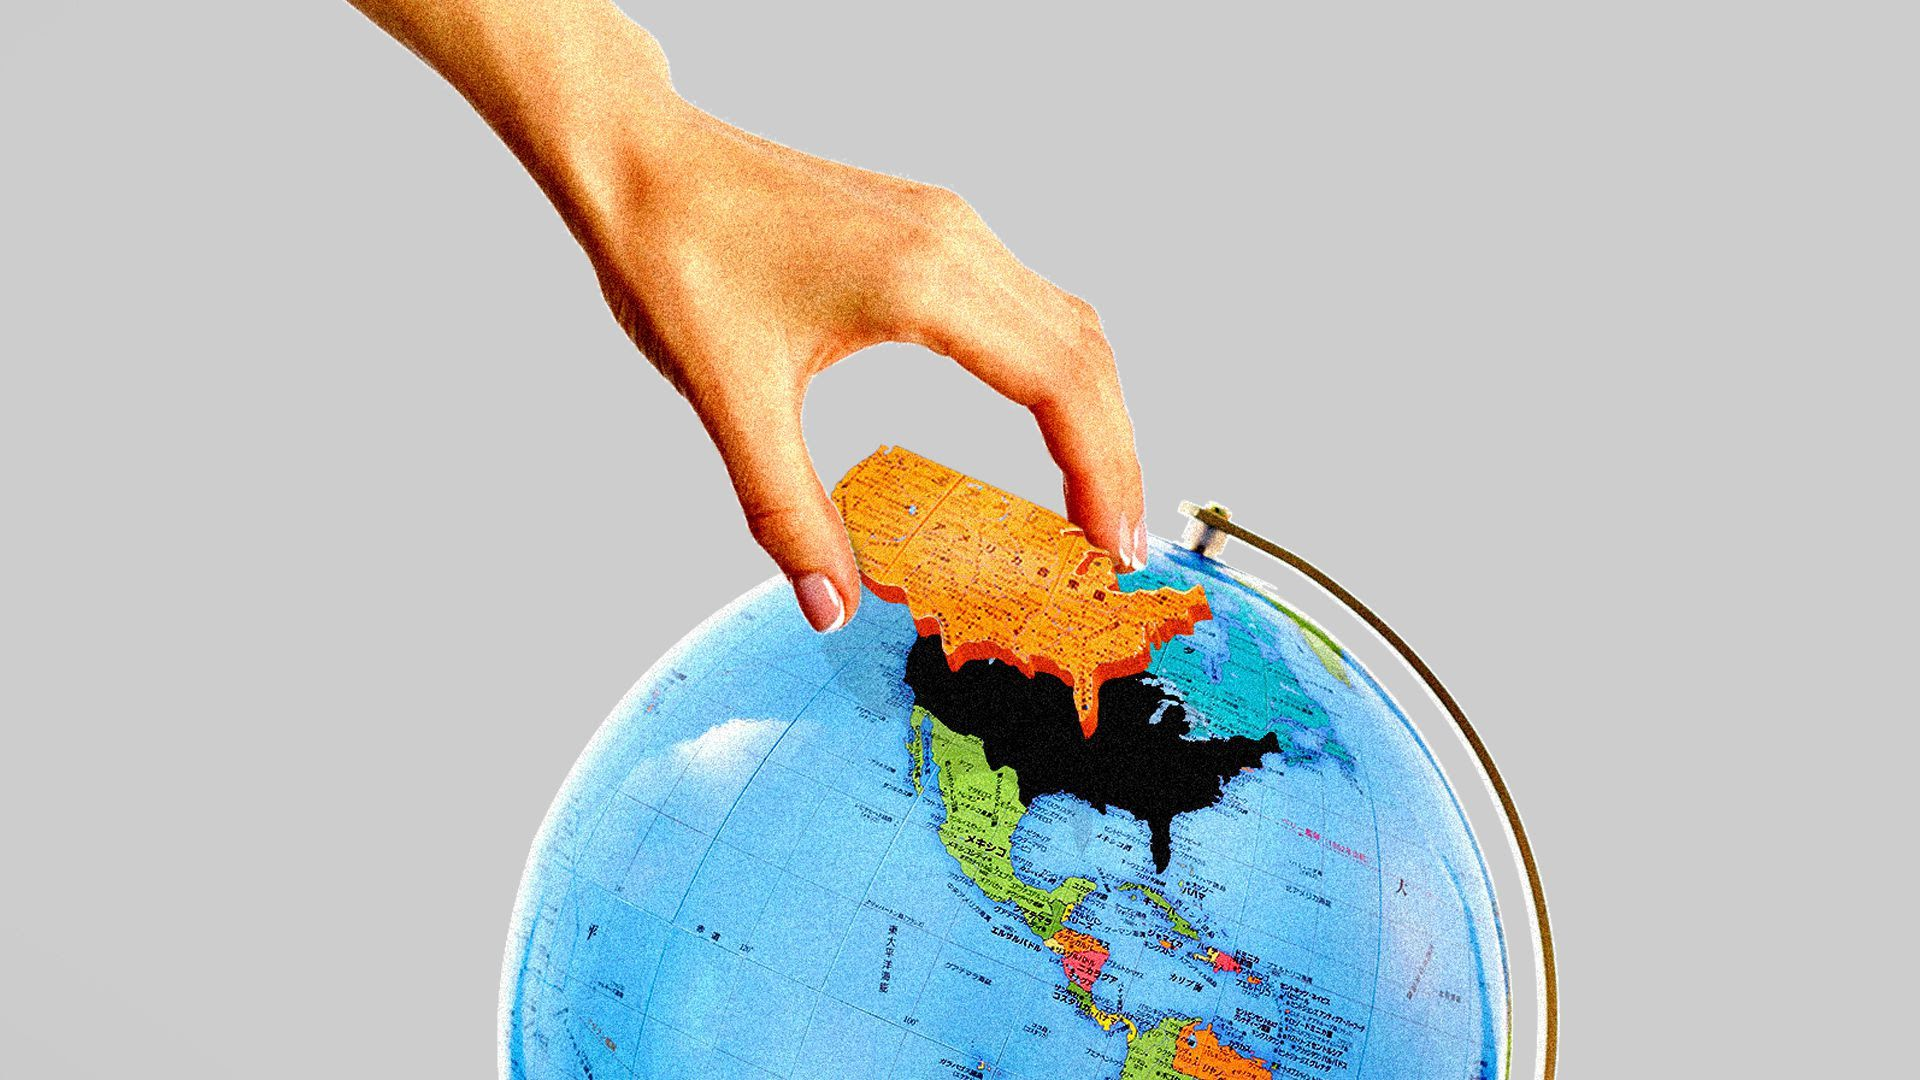 An illustration of the U.S. being taken off a globe